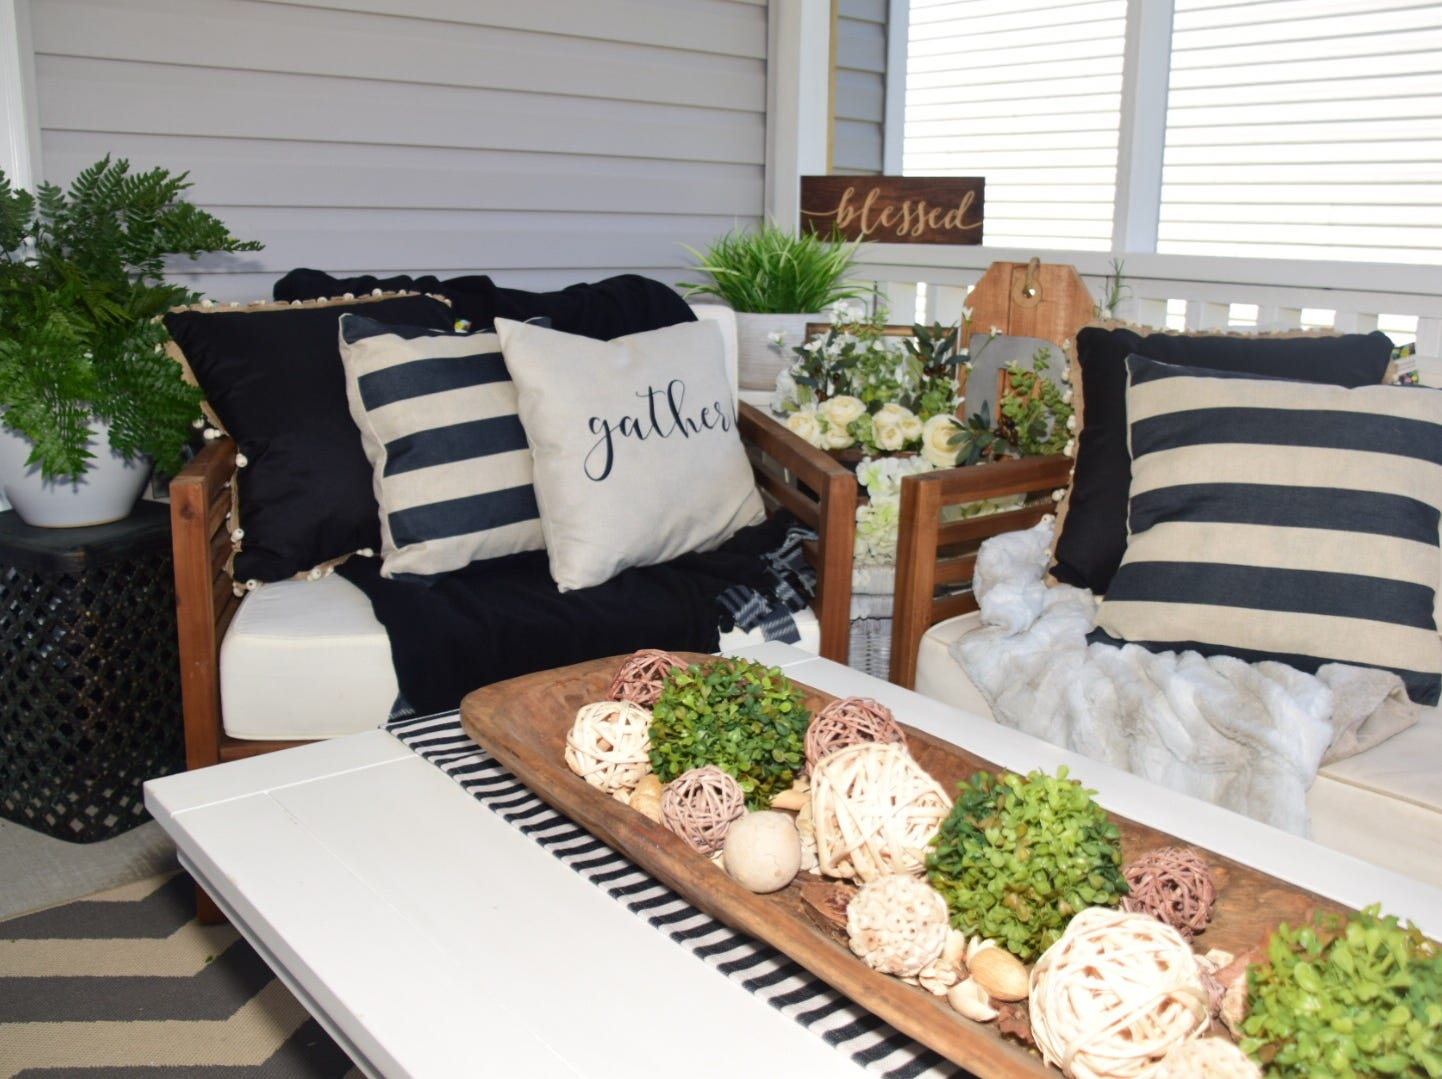 Having neutral colors in her furniture, Kelly Reynolds can easily change up the look of her patio from summer to fall simply by changing the pillows.